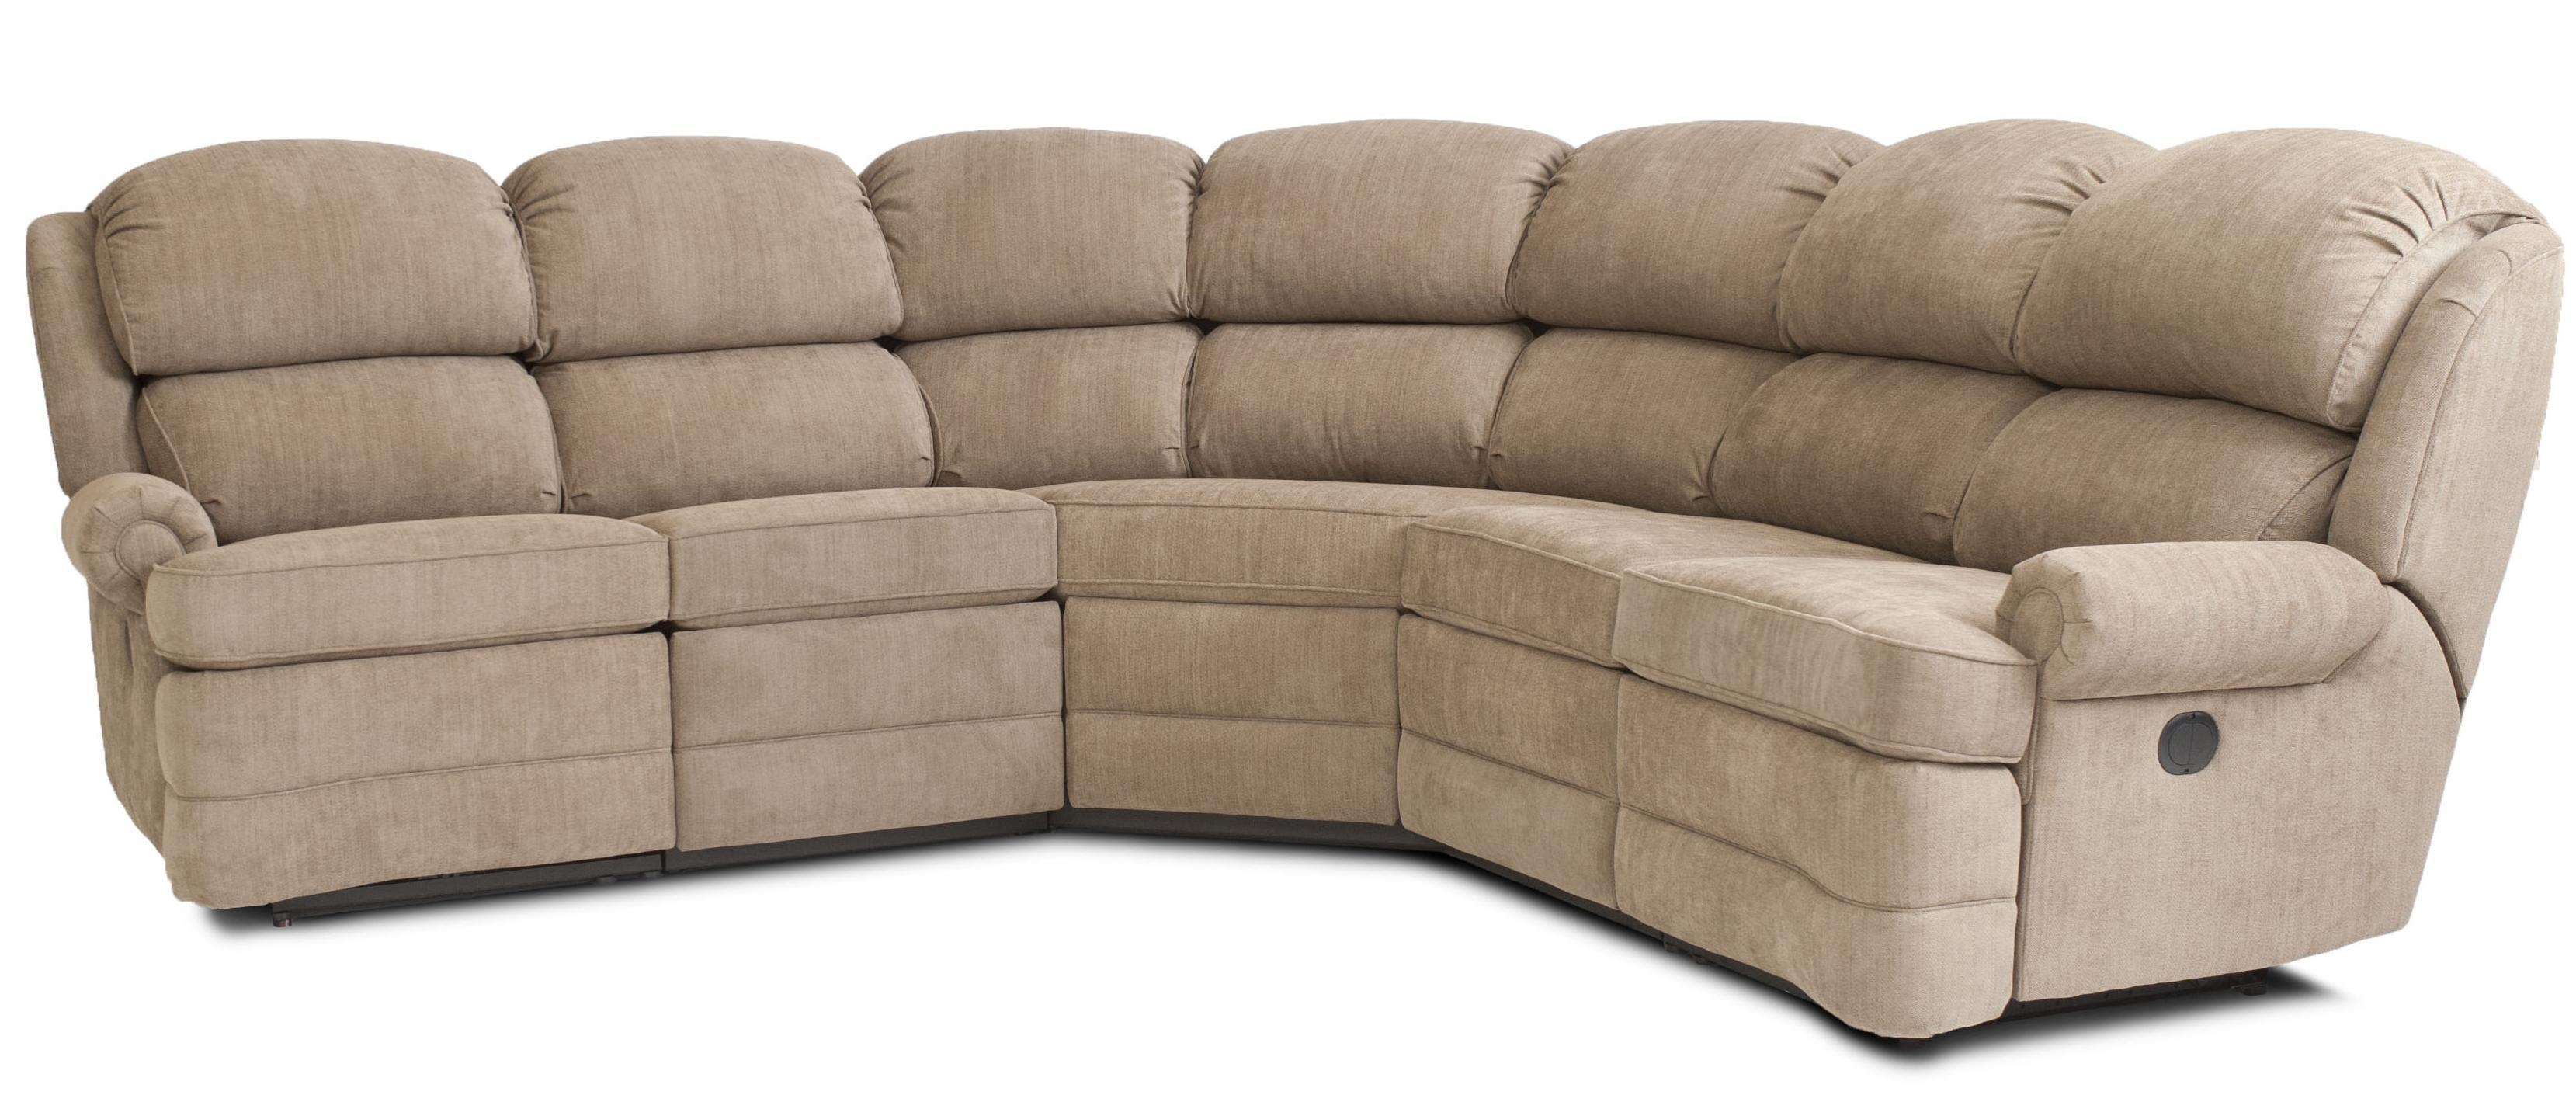 20 Ideas of Jedd Fabric Reclining Sectional Sofa